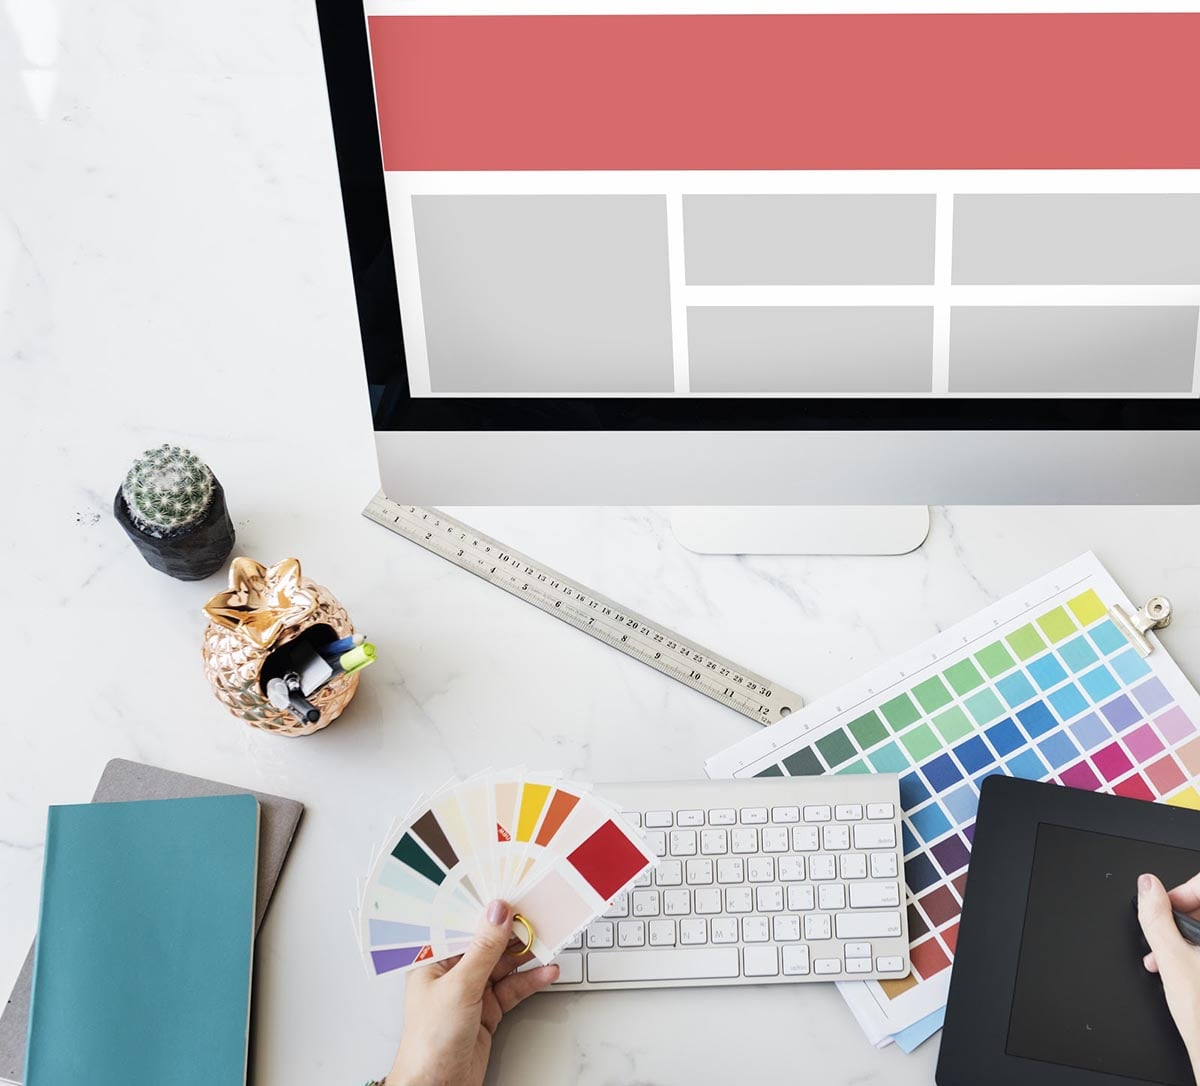 How Beneficial is Web Design For Small Business?